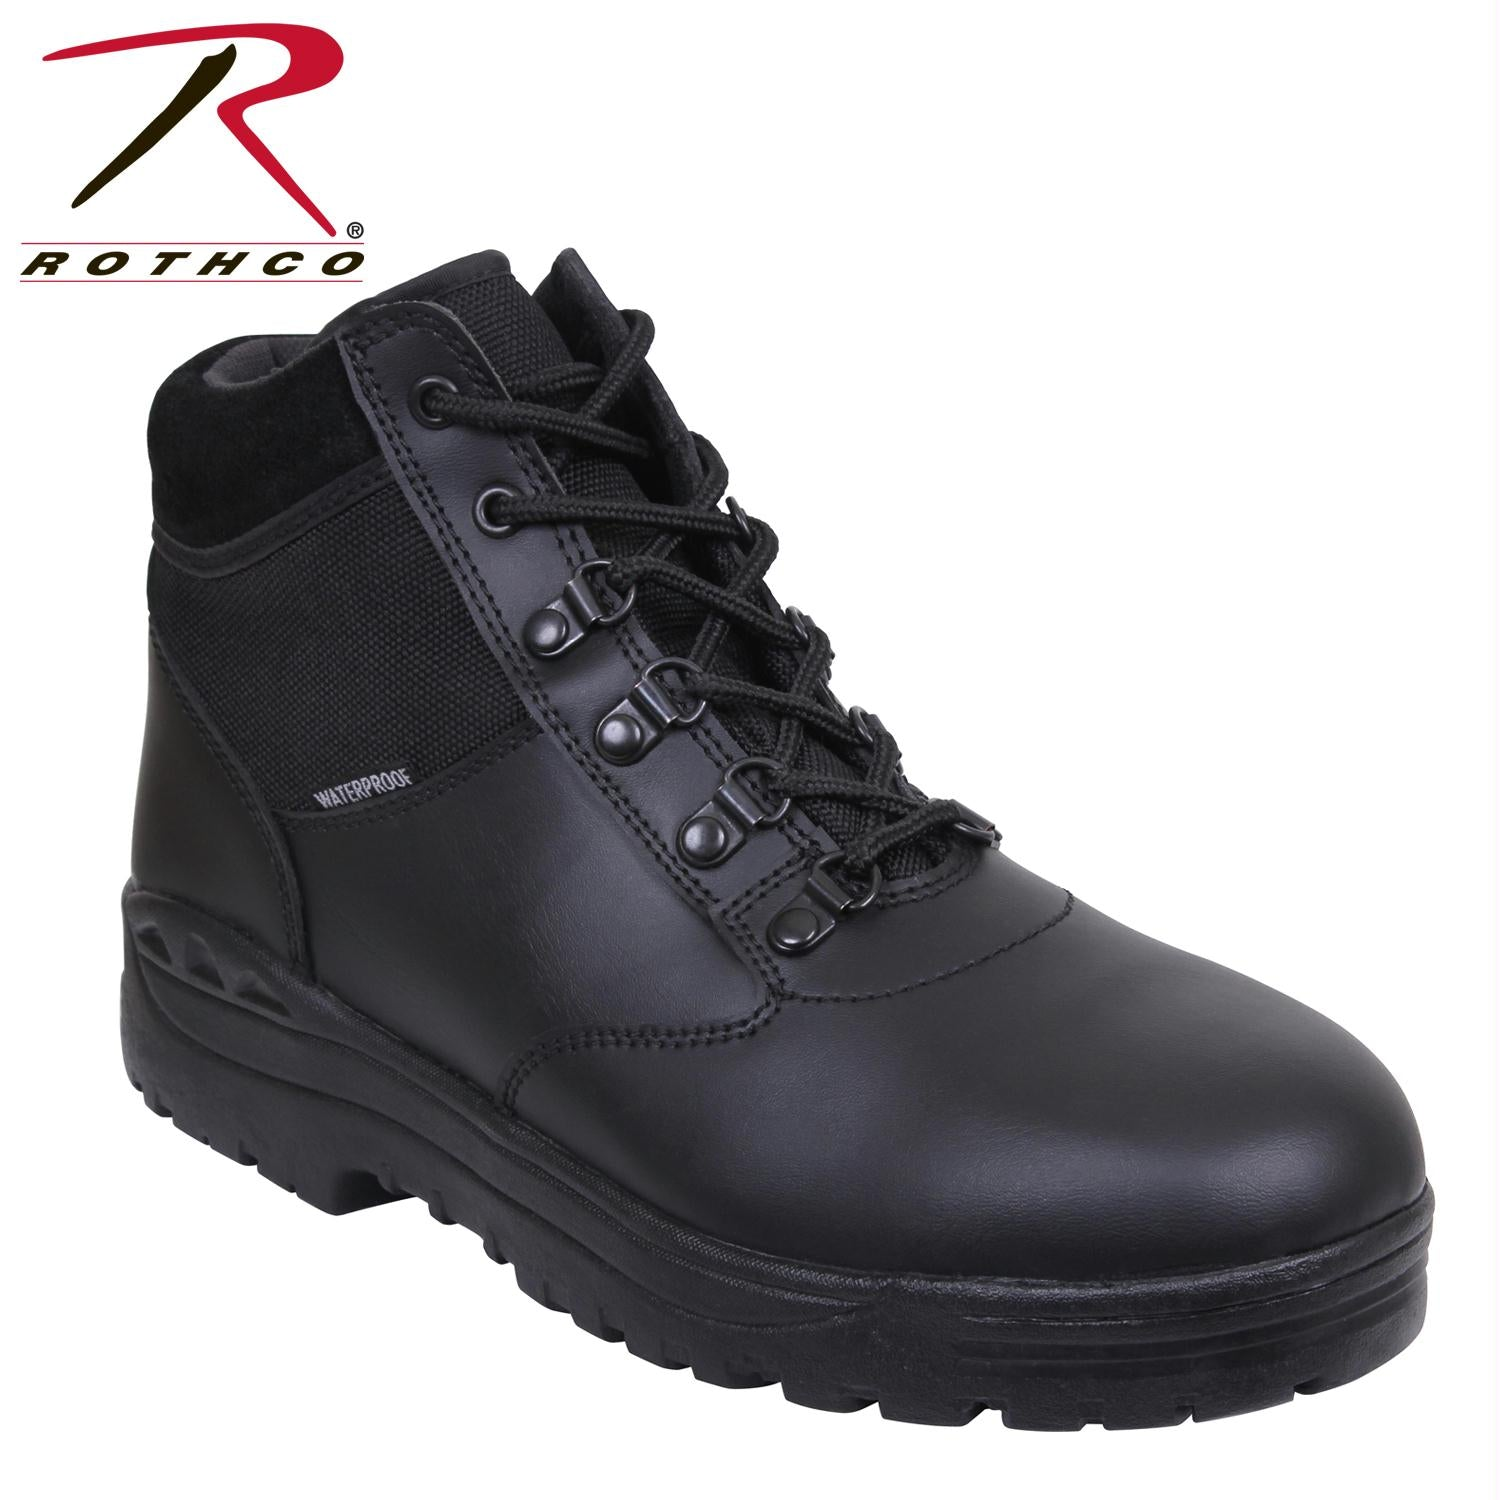 Rothco Forced Entry Tactical Waterproof Boot - Black / 7.5